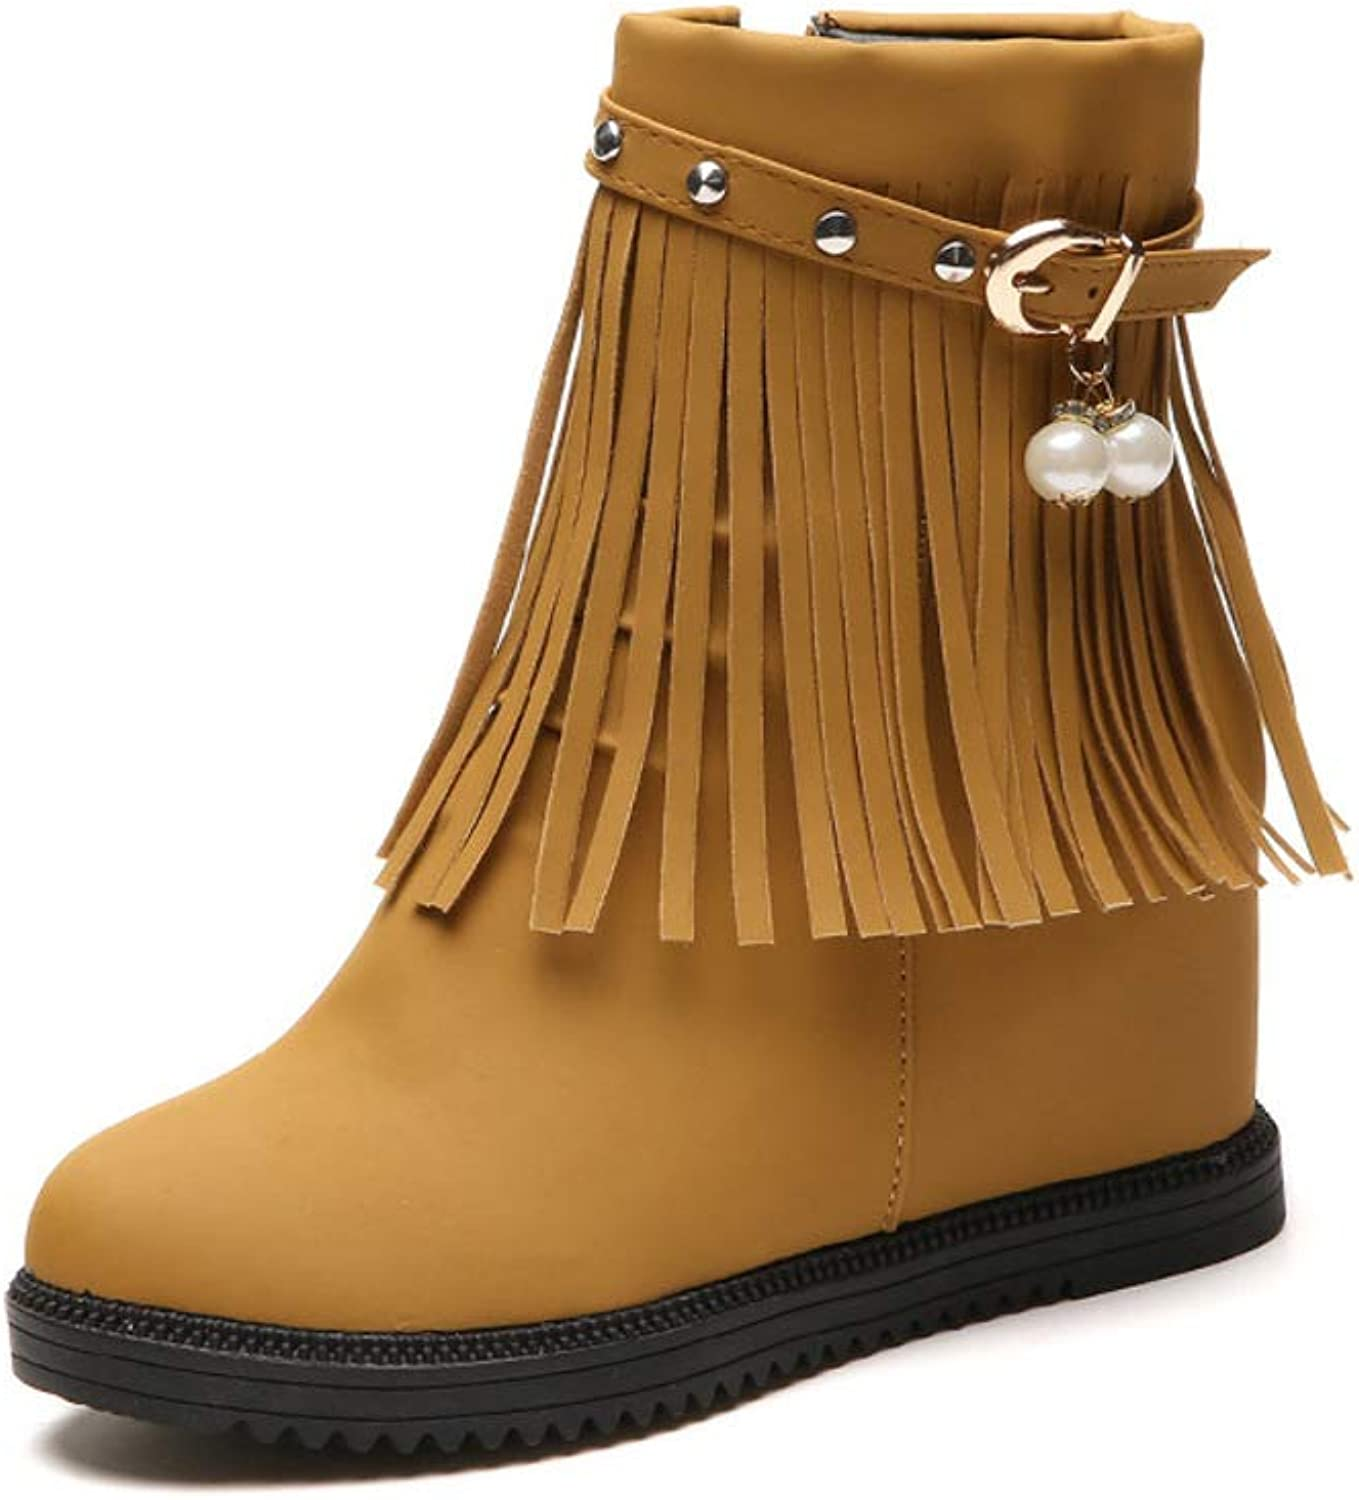 Boots Women's Autumn and Winter Booties Tassels Internal Increase Student